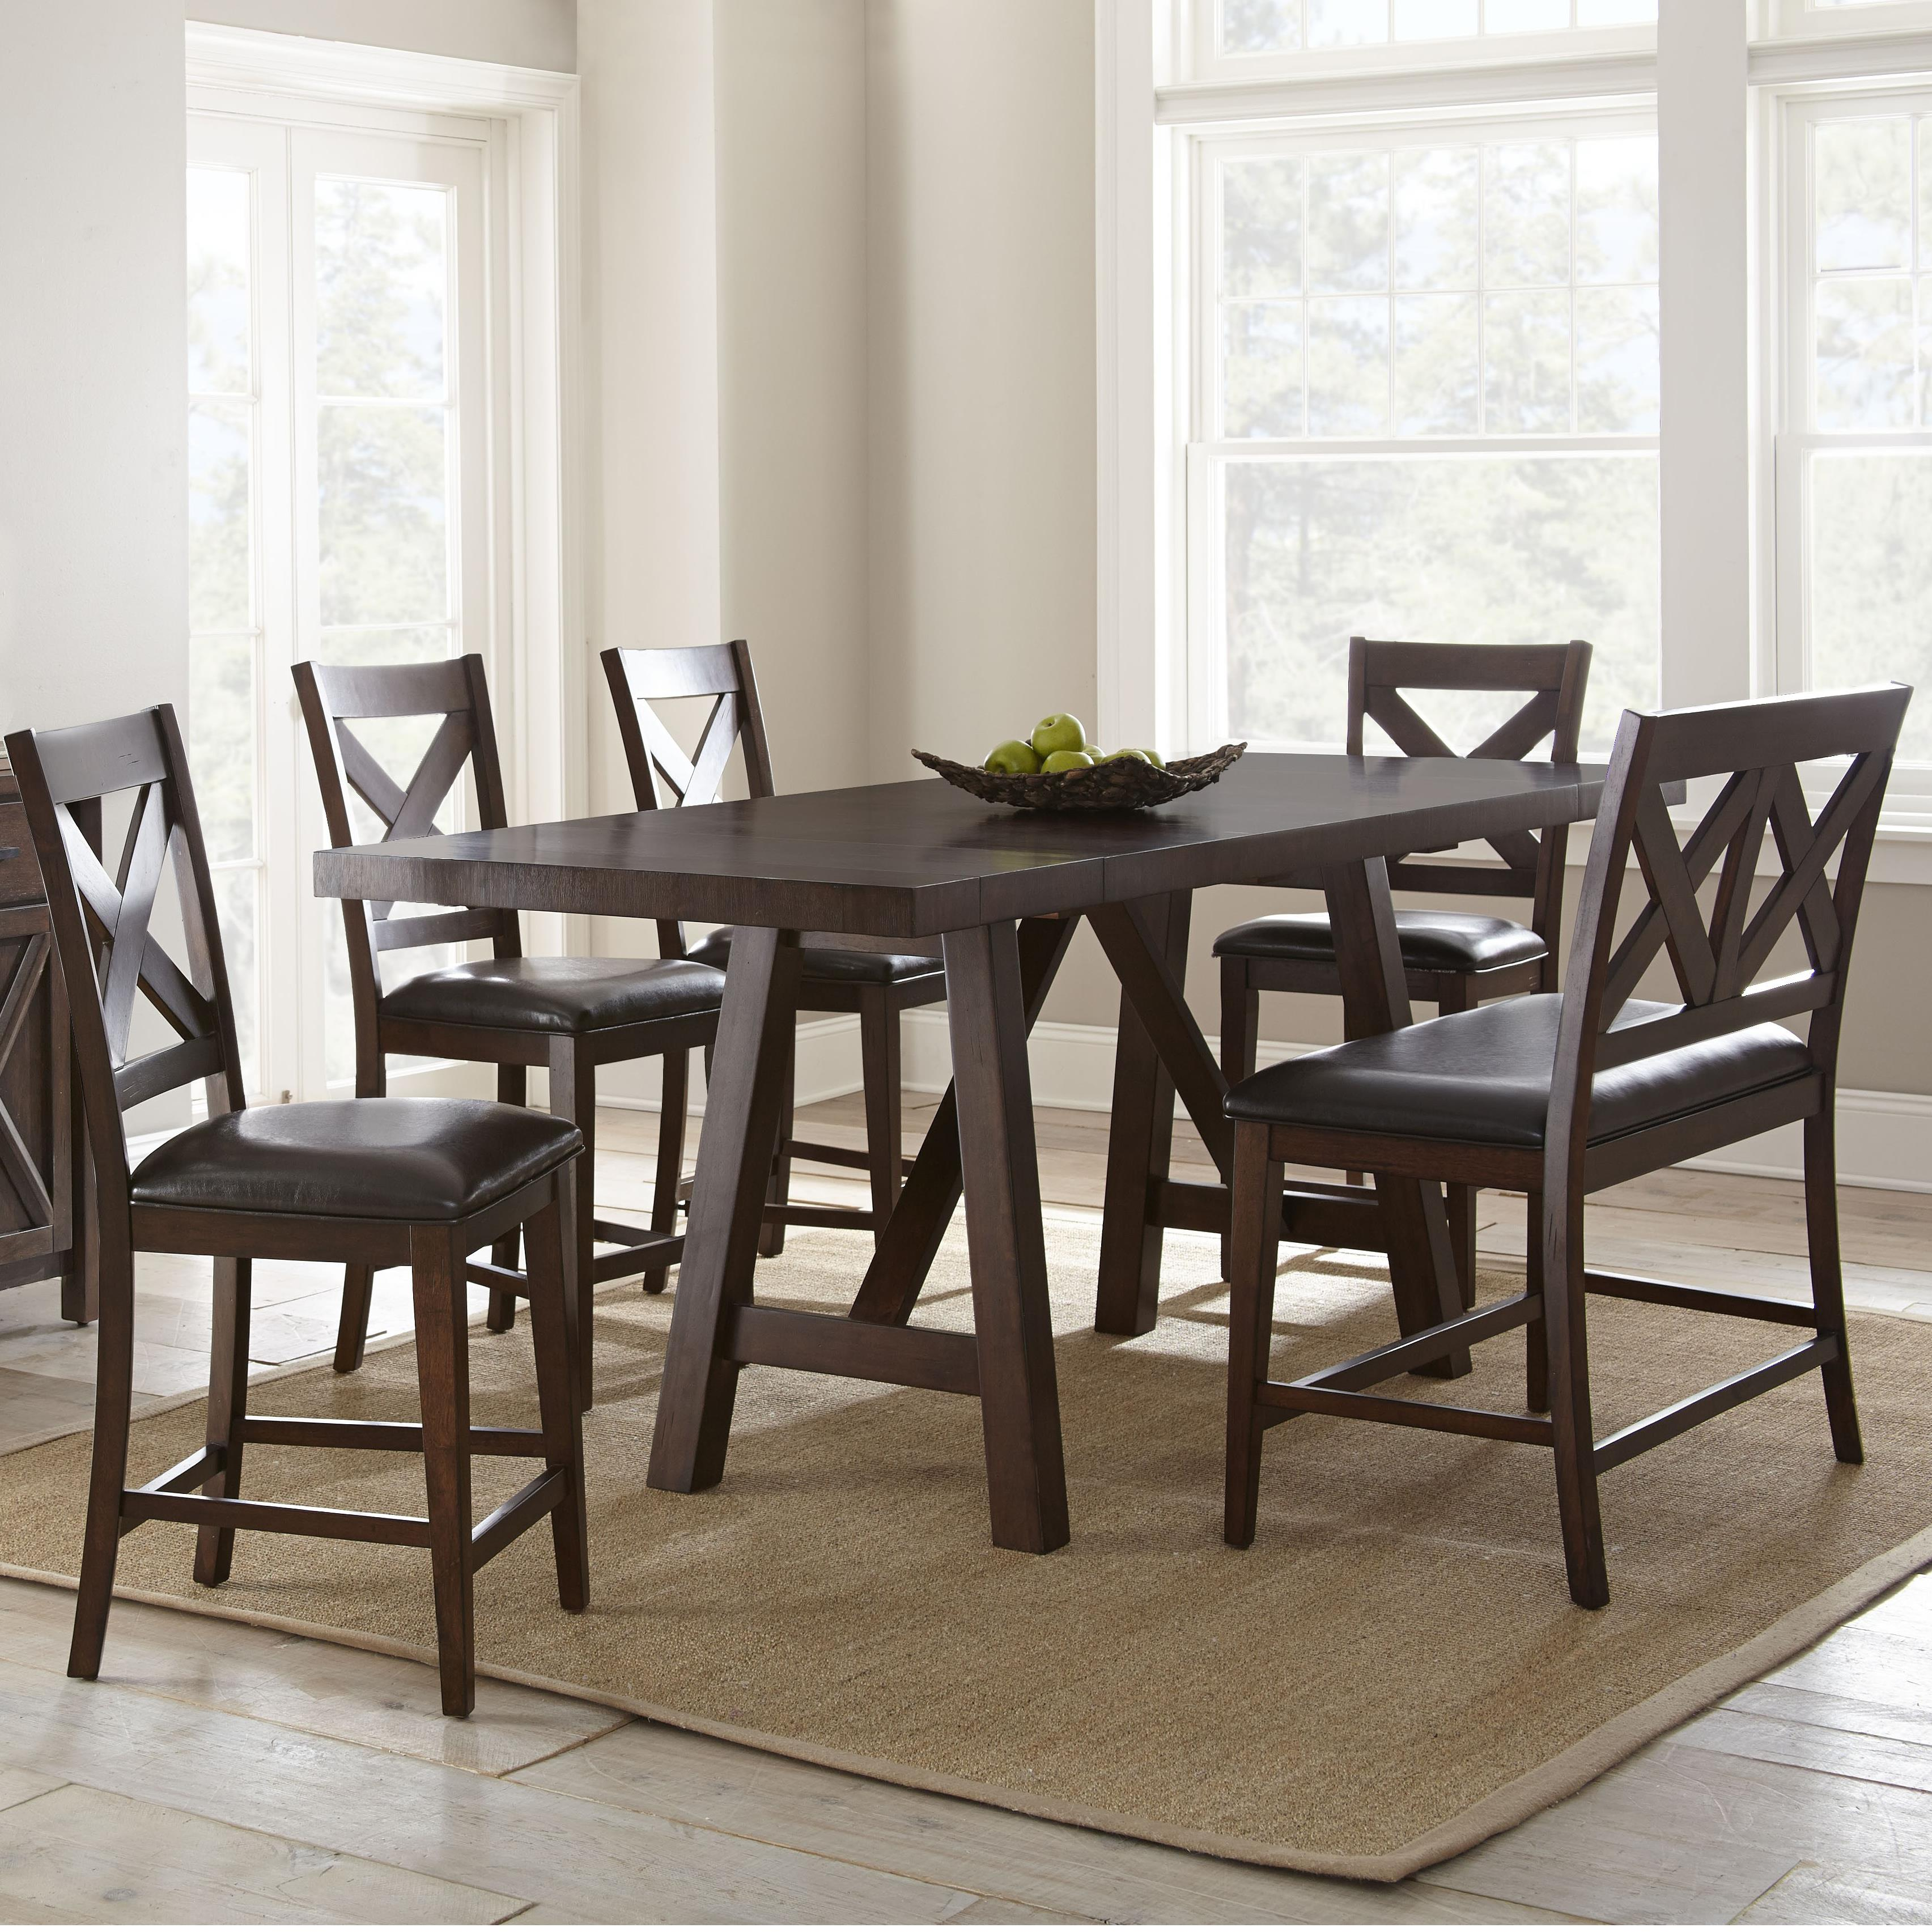 Vendor 3985 Clapton 6 Piece Counter Dining Set with Bench - Item Number: CT700PT+4xCC+BN